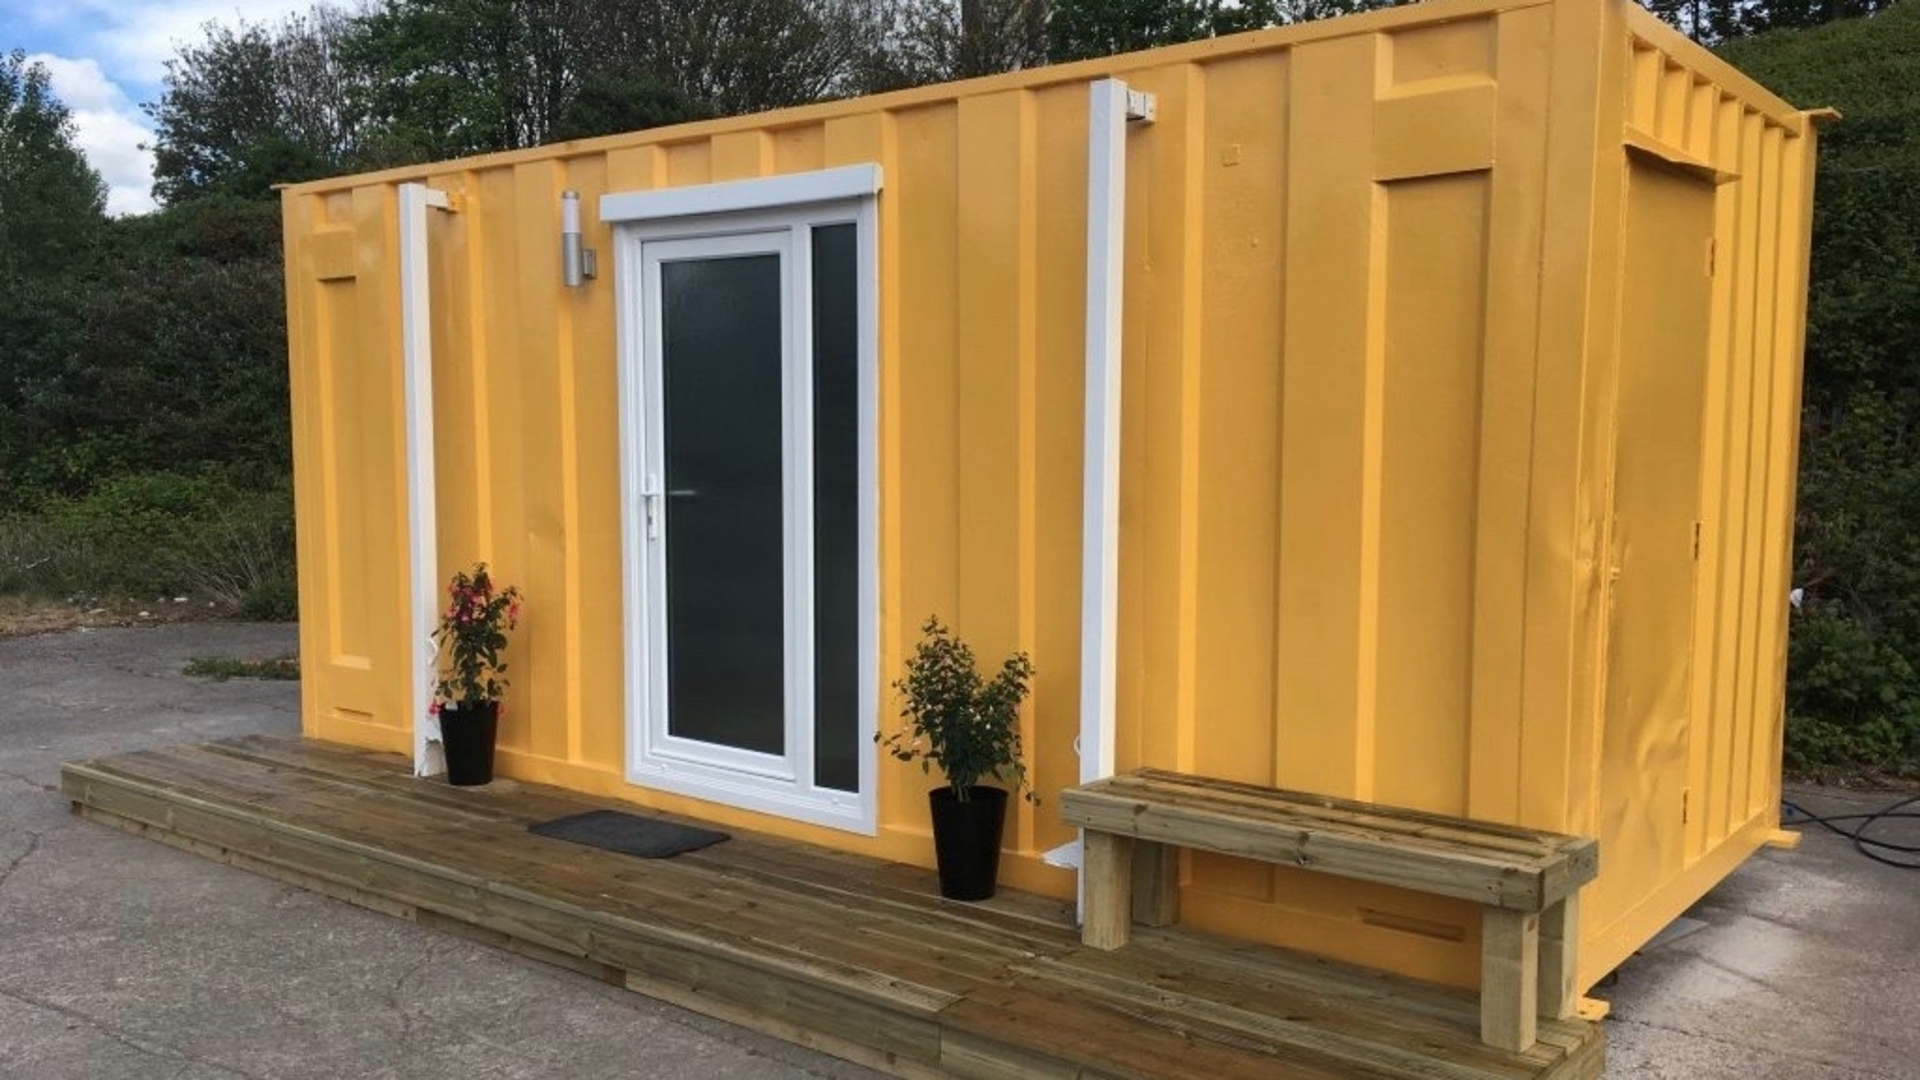 Bristol Community Turns Shipping Containers Into Homes